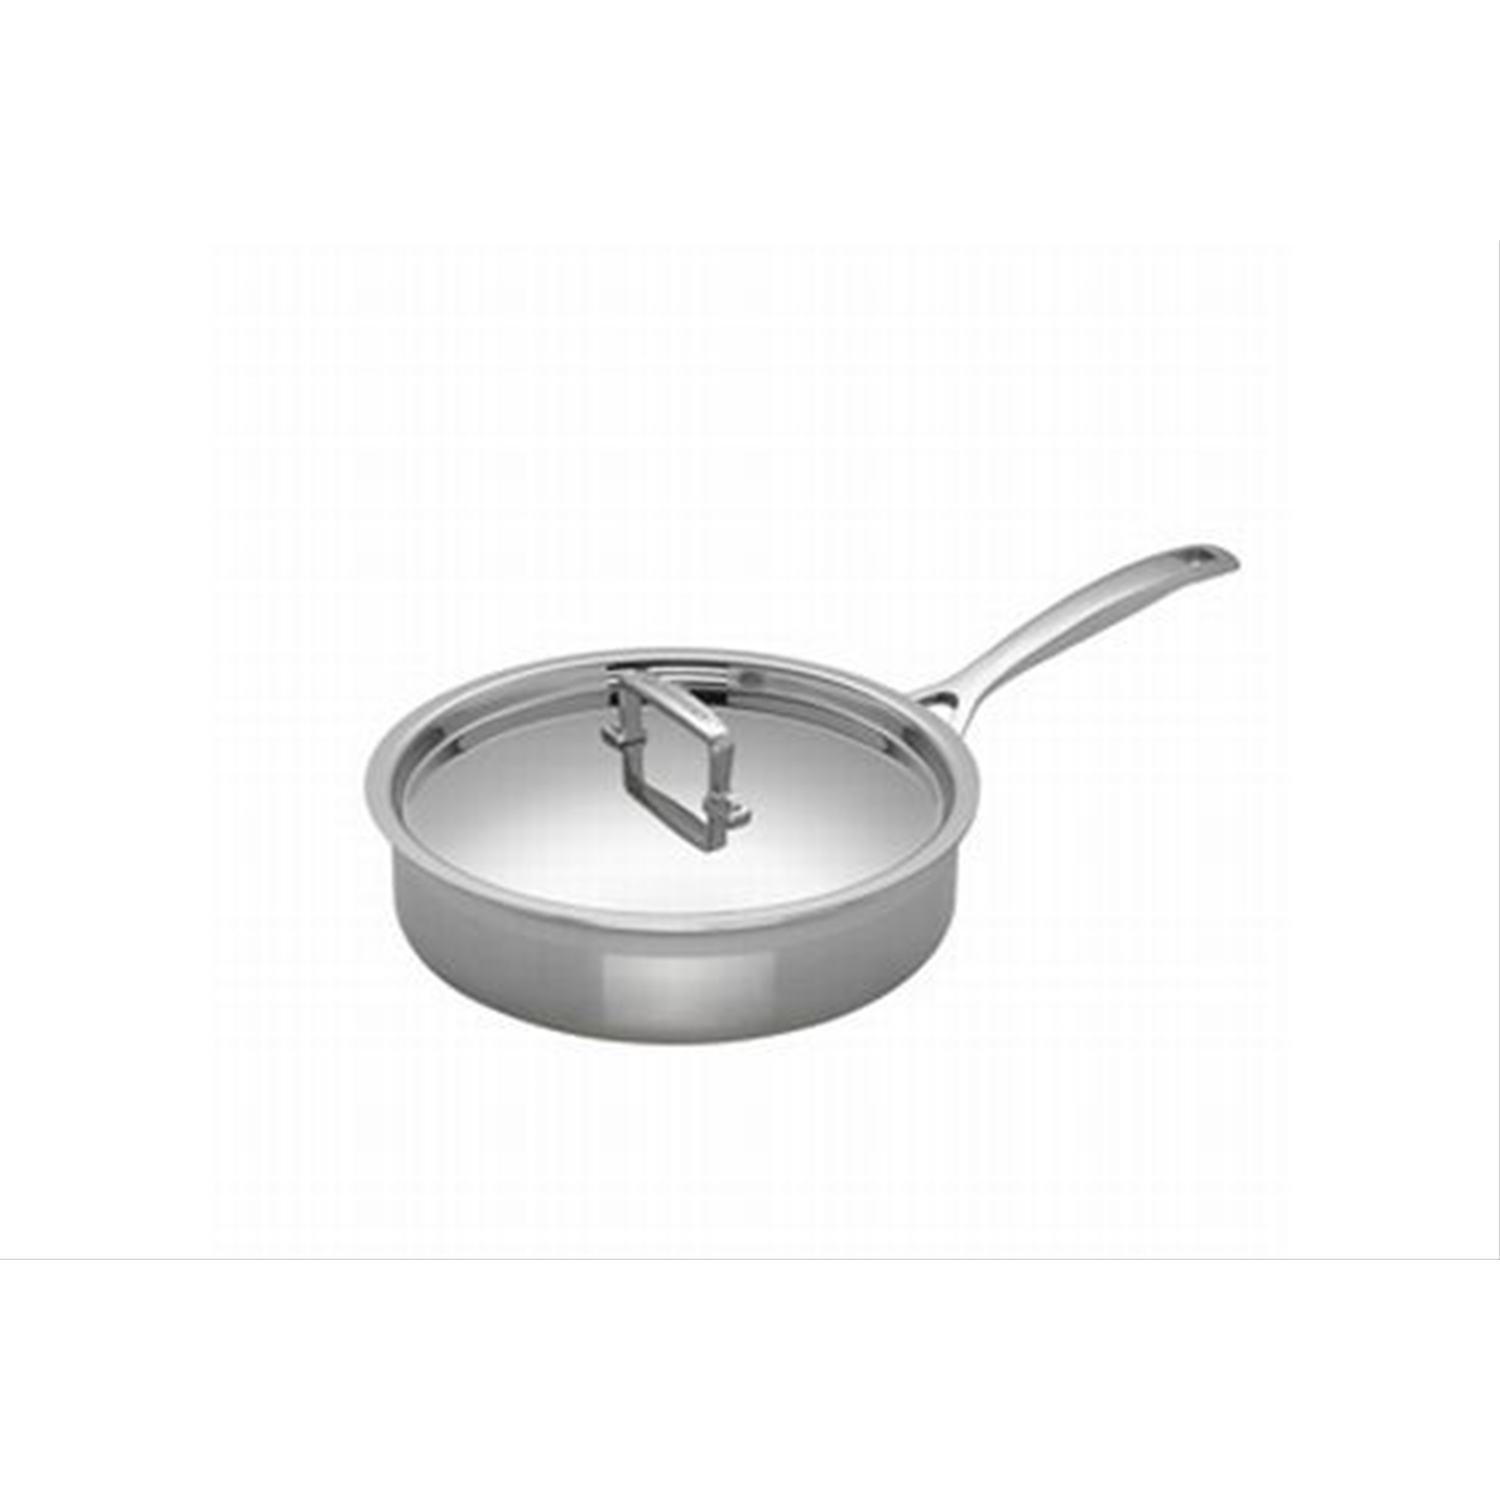 Image of Le Creuset 3-Ply Stainless Steel Saute Pan, 24cm